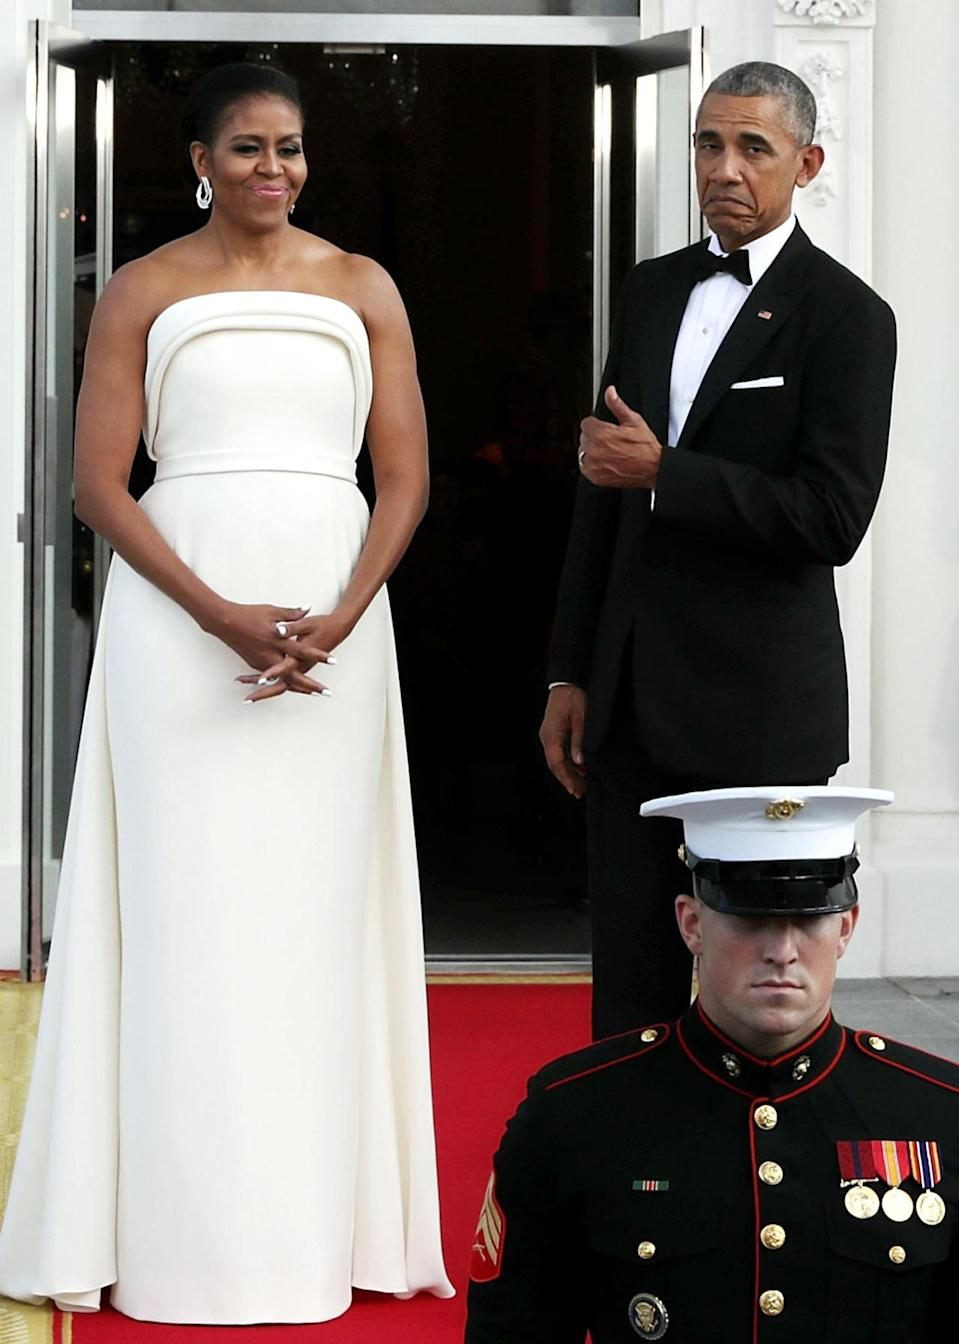 <p>And when he gave her a thumbs up later that evening. [Photo: Getty/Chip Somodevilla]</p>